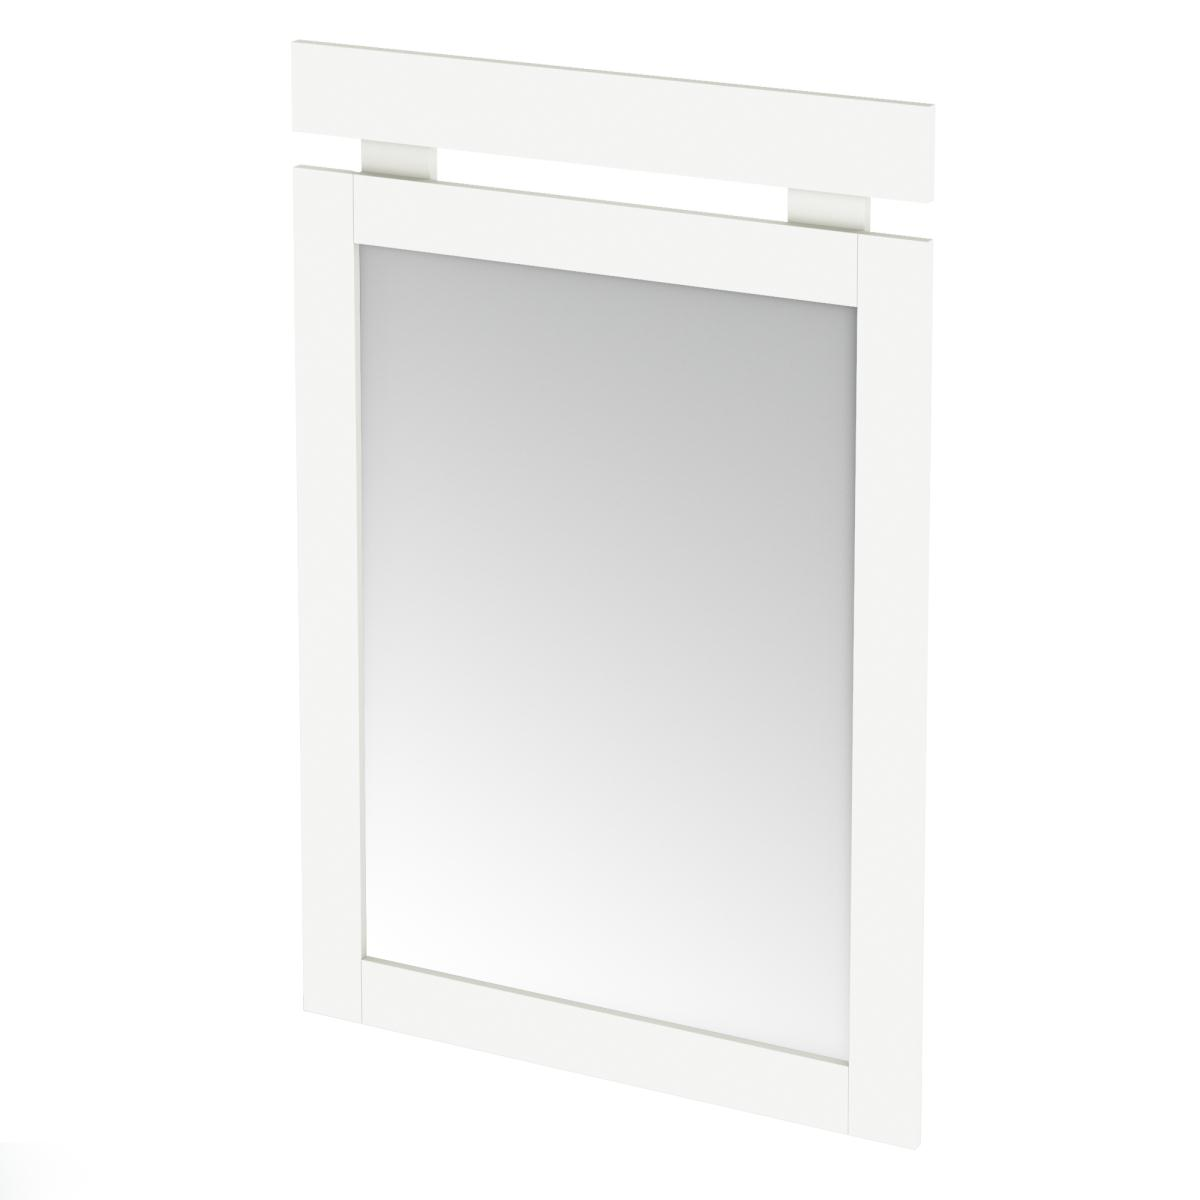 South Shore Sparkling Mirror 29 Inch x 43 Inch - Pure White